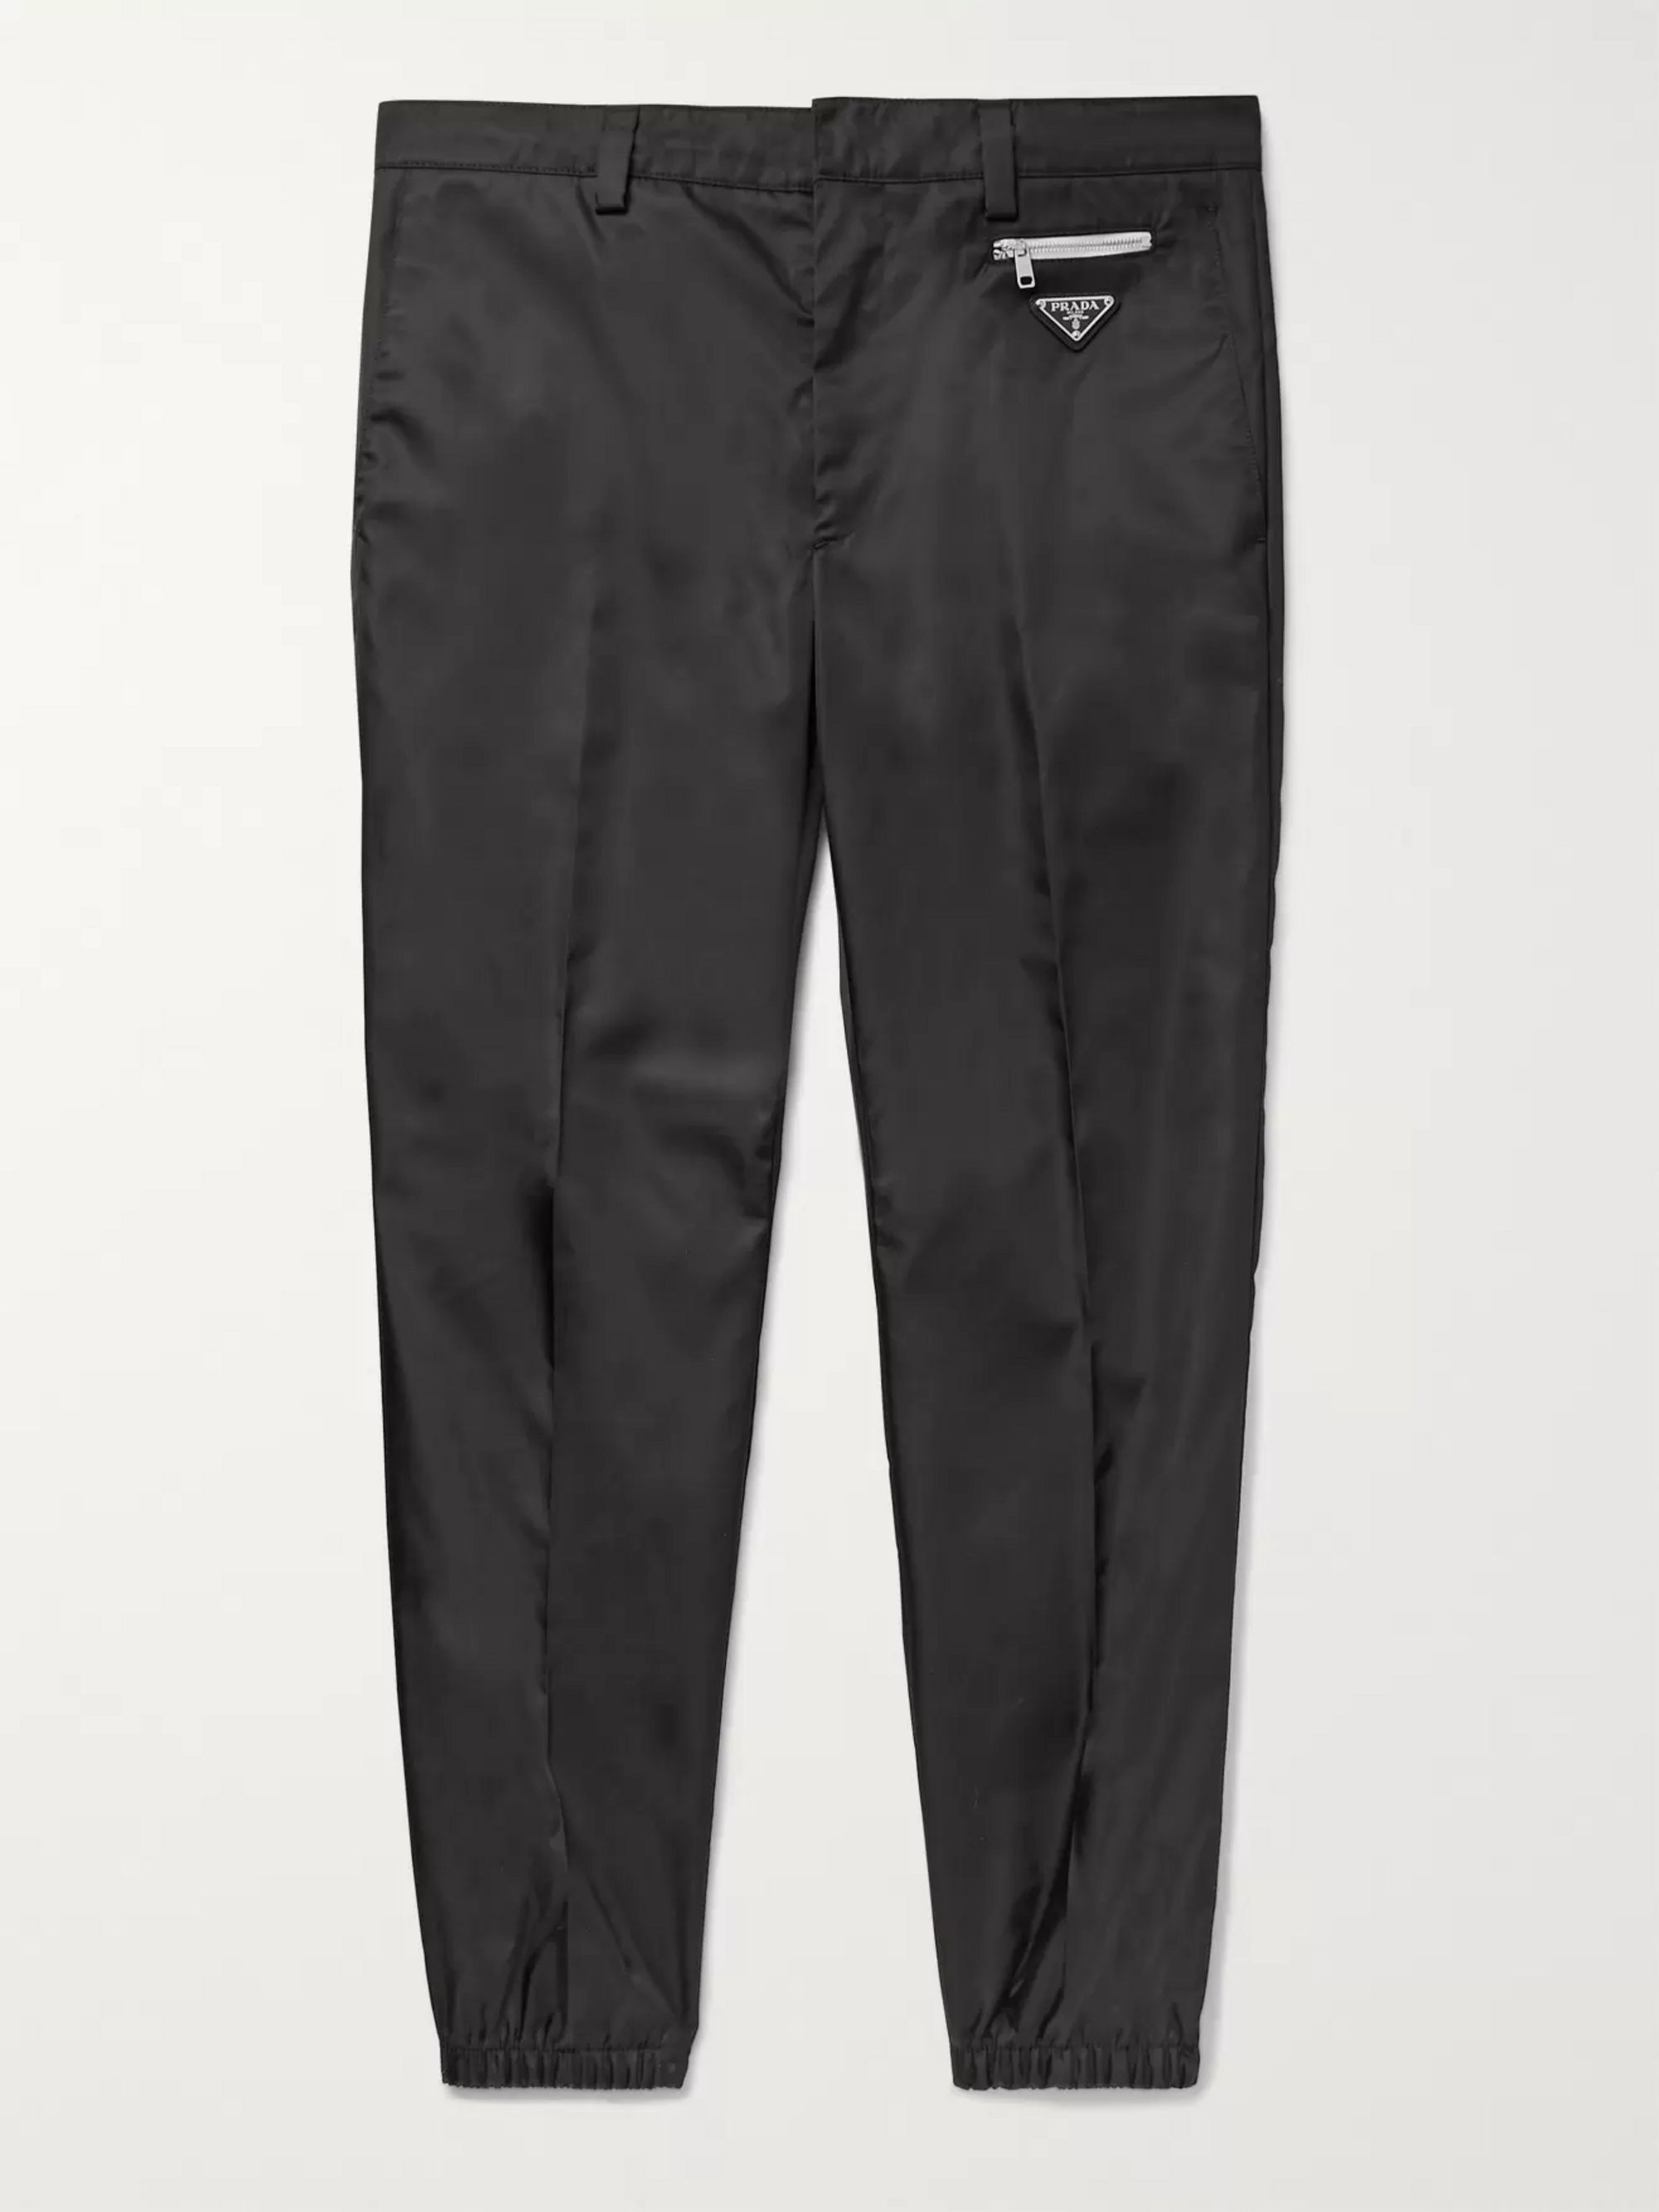 Prada Black Slim-Fit Tapered Logo-Appliquéd Nylon Trousers